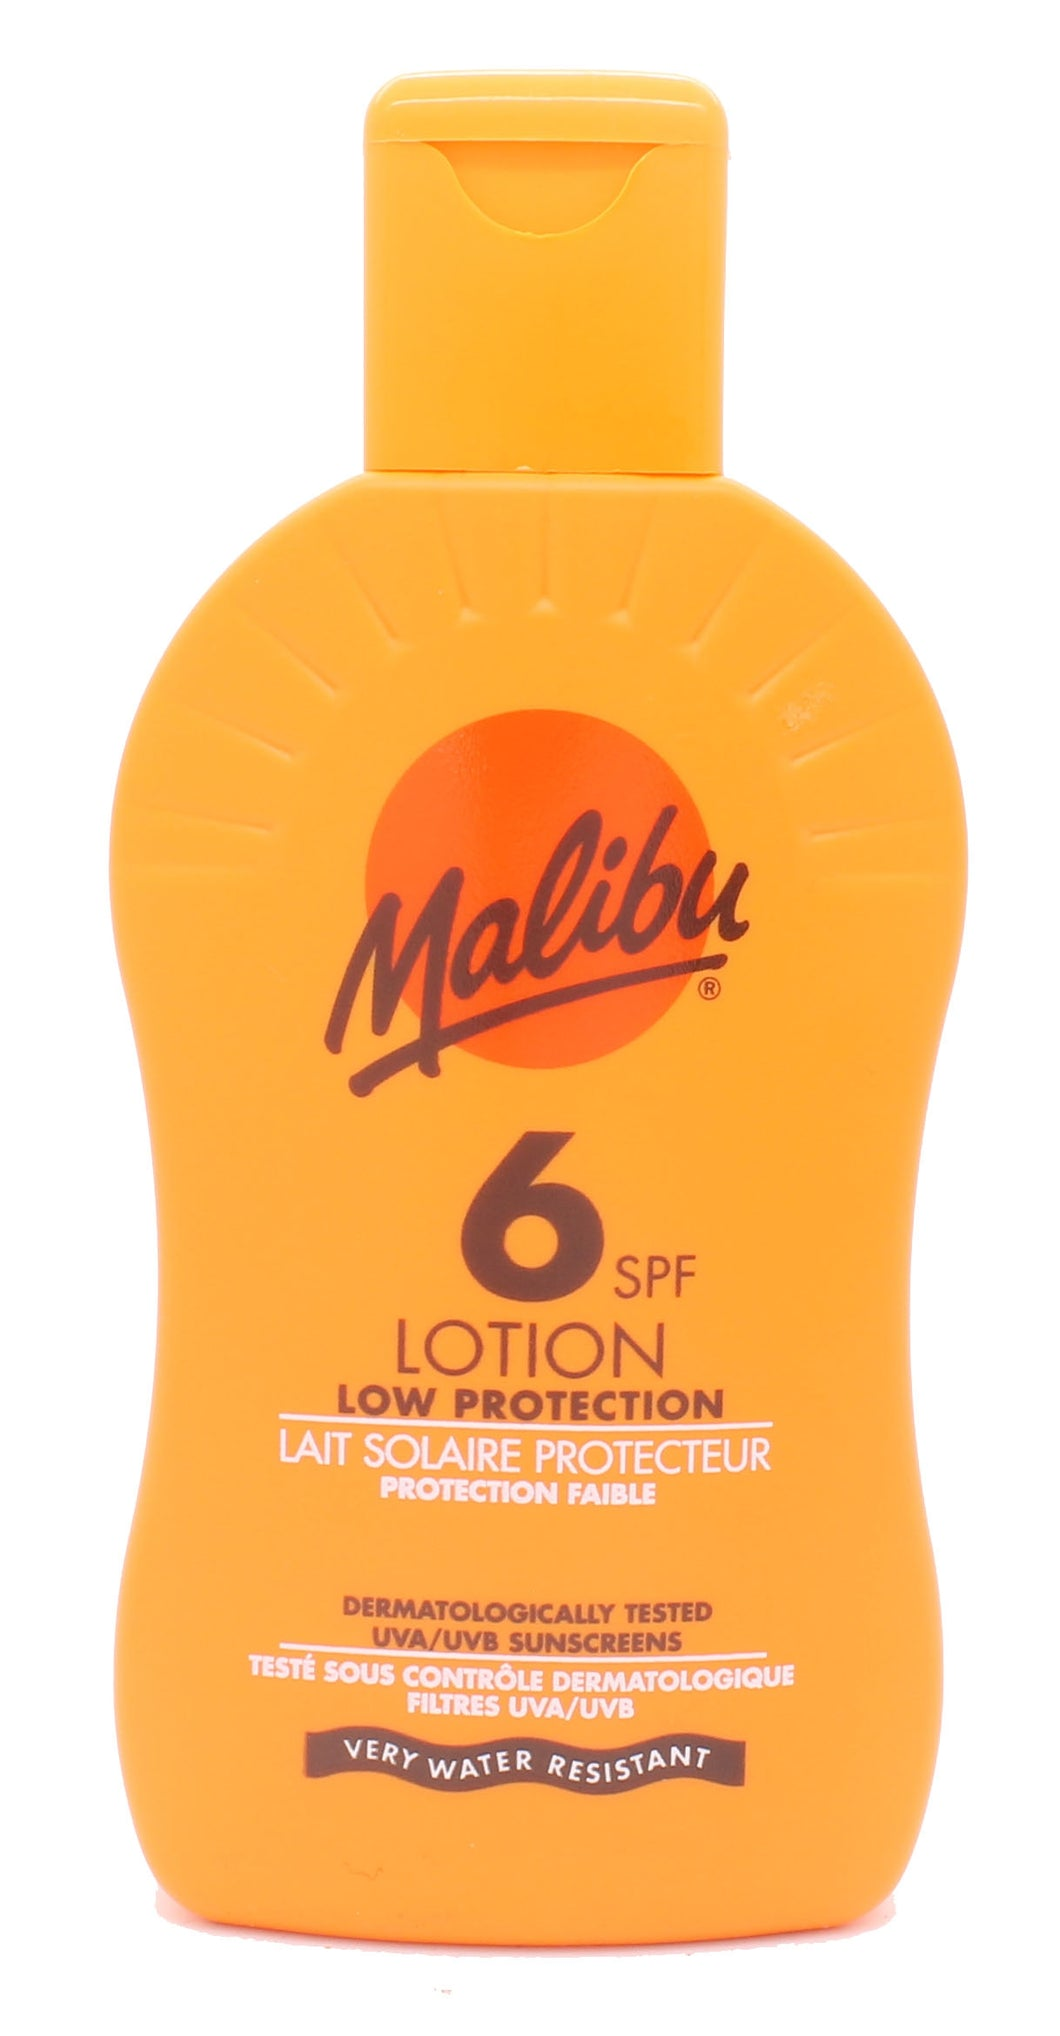 Malibu Sun Lotion SPF6 Low Protection 200ml